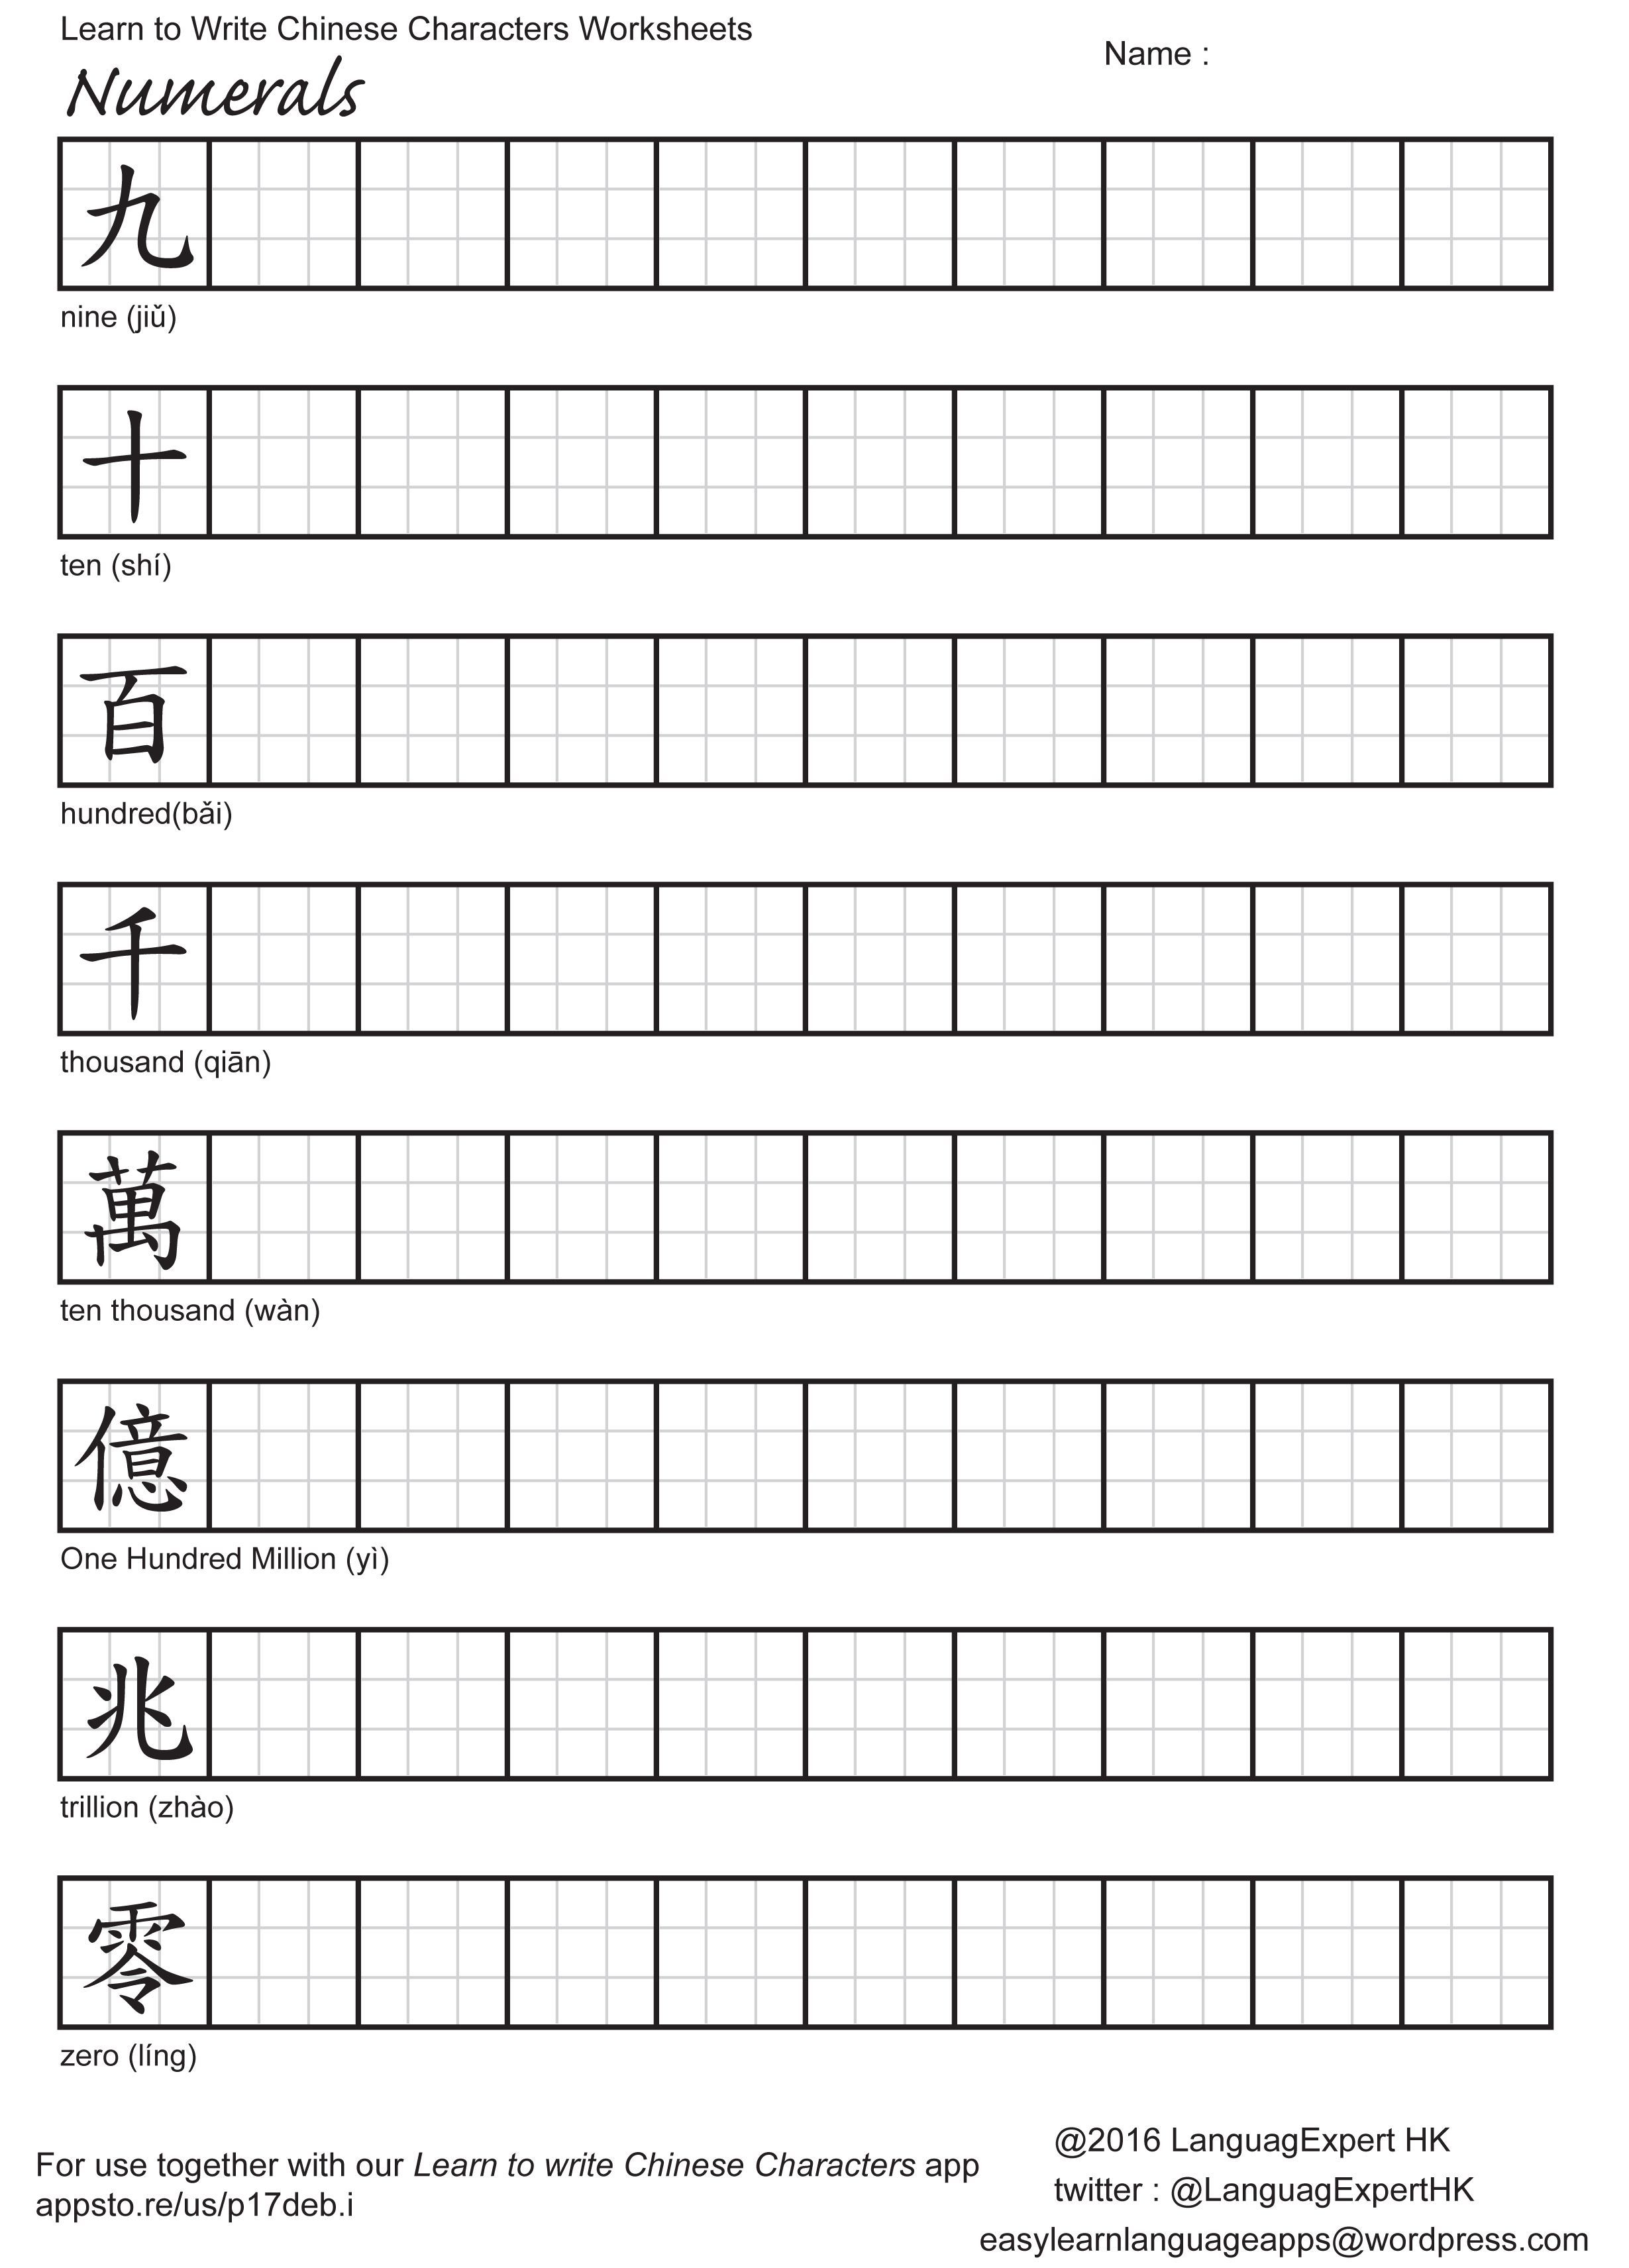 Learn To Write Chinese Characters Worksheets Write Chinese